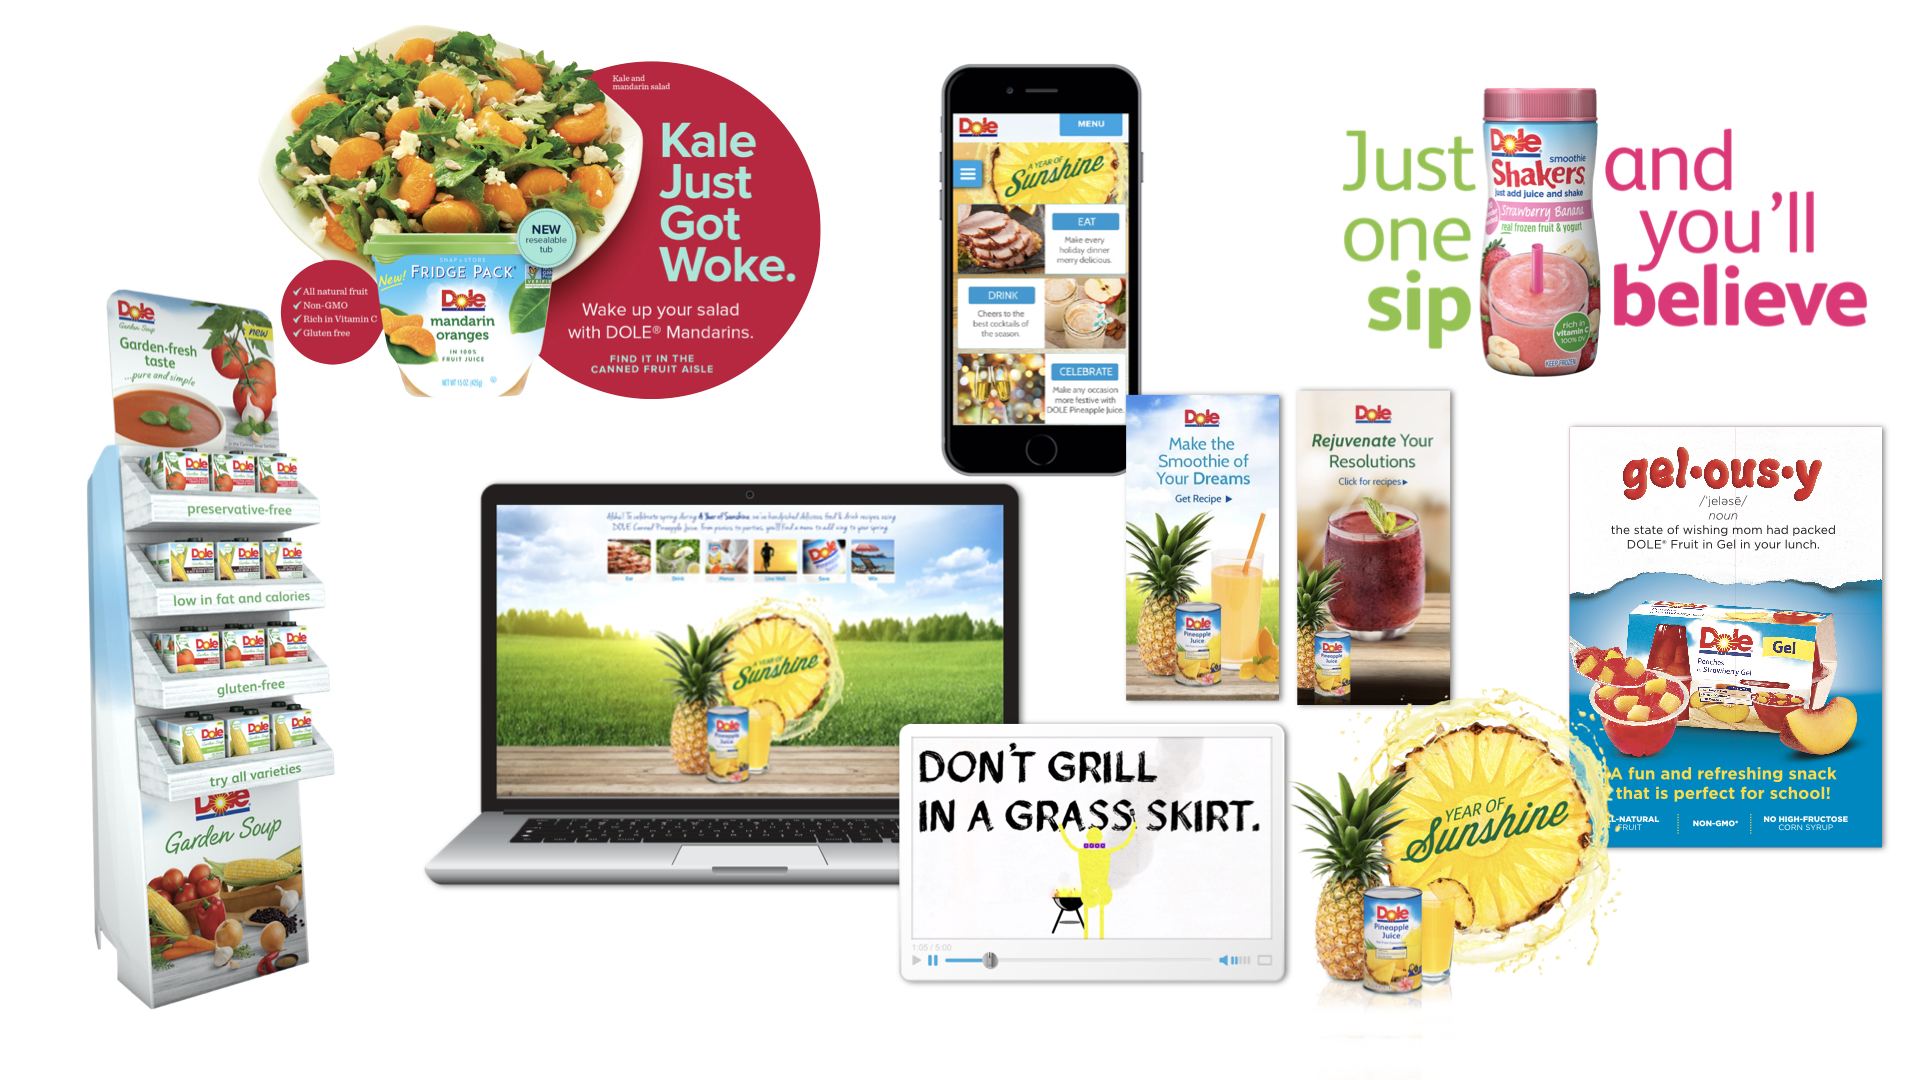 As one of Dole's key partners, we have worked on a variety of brand launches, strategic campaigns, and shopper marketing programs.